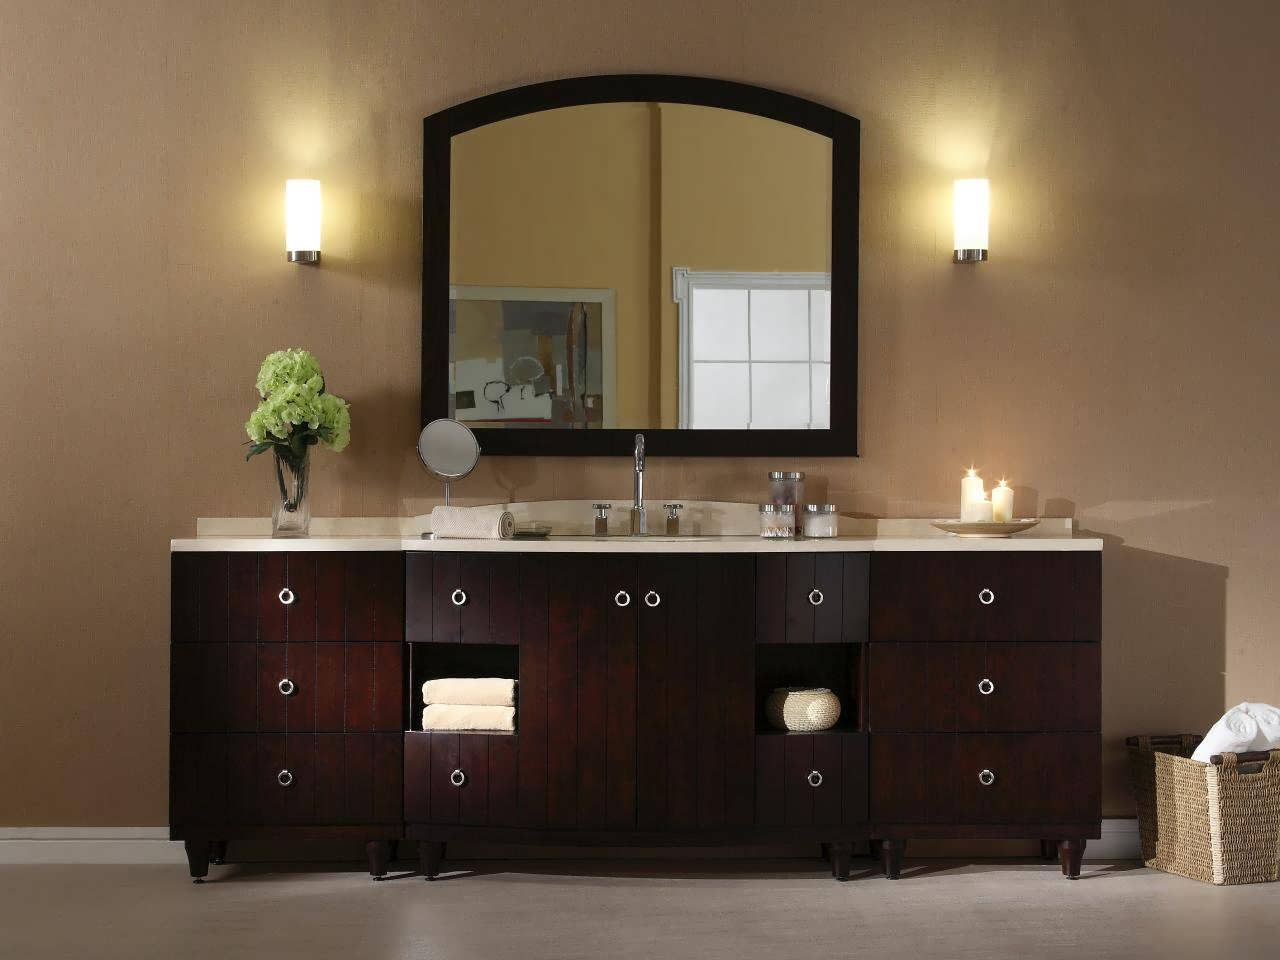 Mirror with Lightbulbs | Hollywood Vanity Mirror with Lights | Hollywood Vanity Mirror with Lights